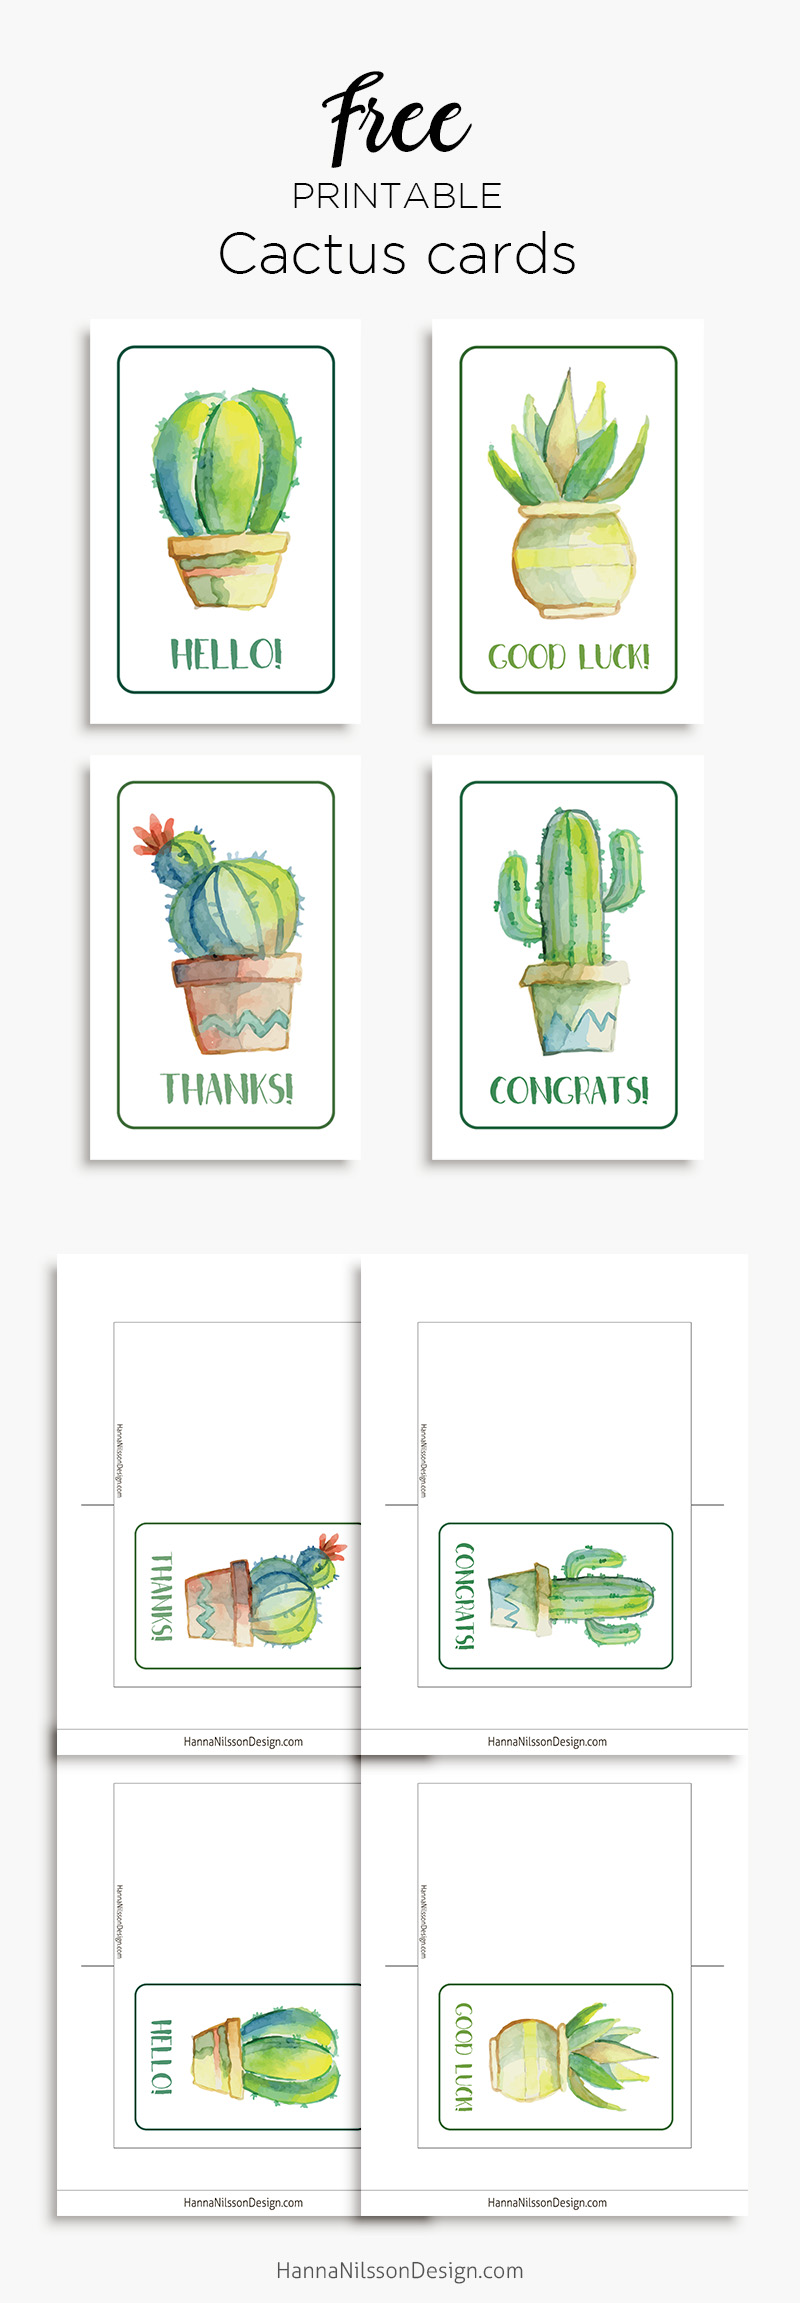 image about Printable Good Luck Cards identify Printable cactus playing cards Wonderful luck! Good day! Owing! Congrats